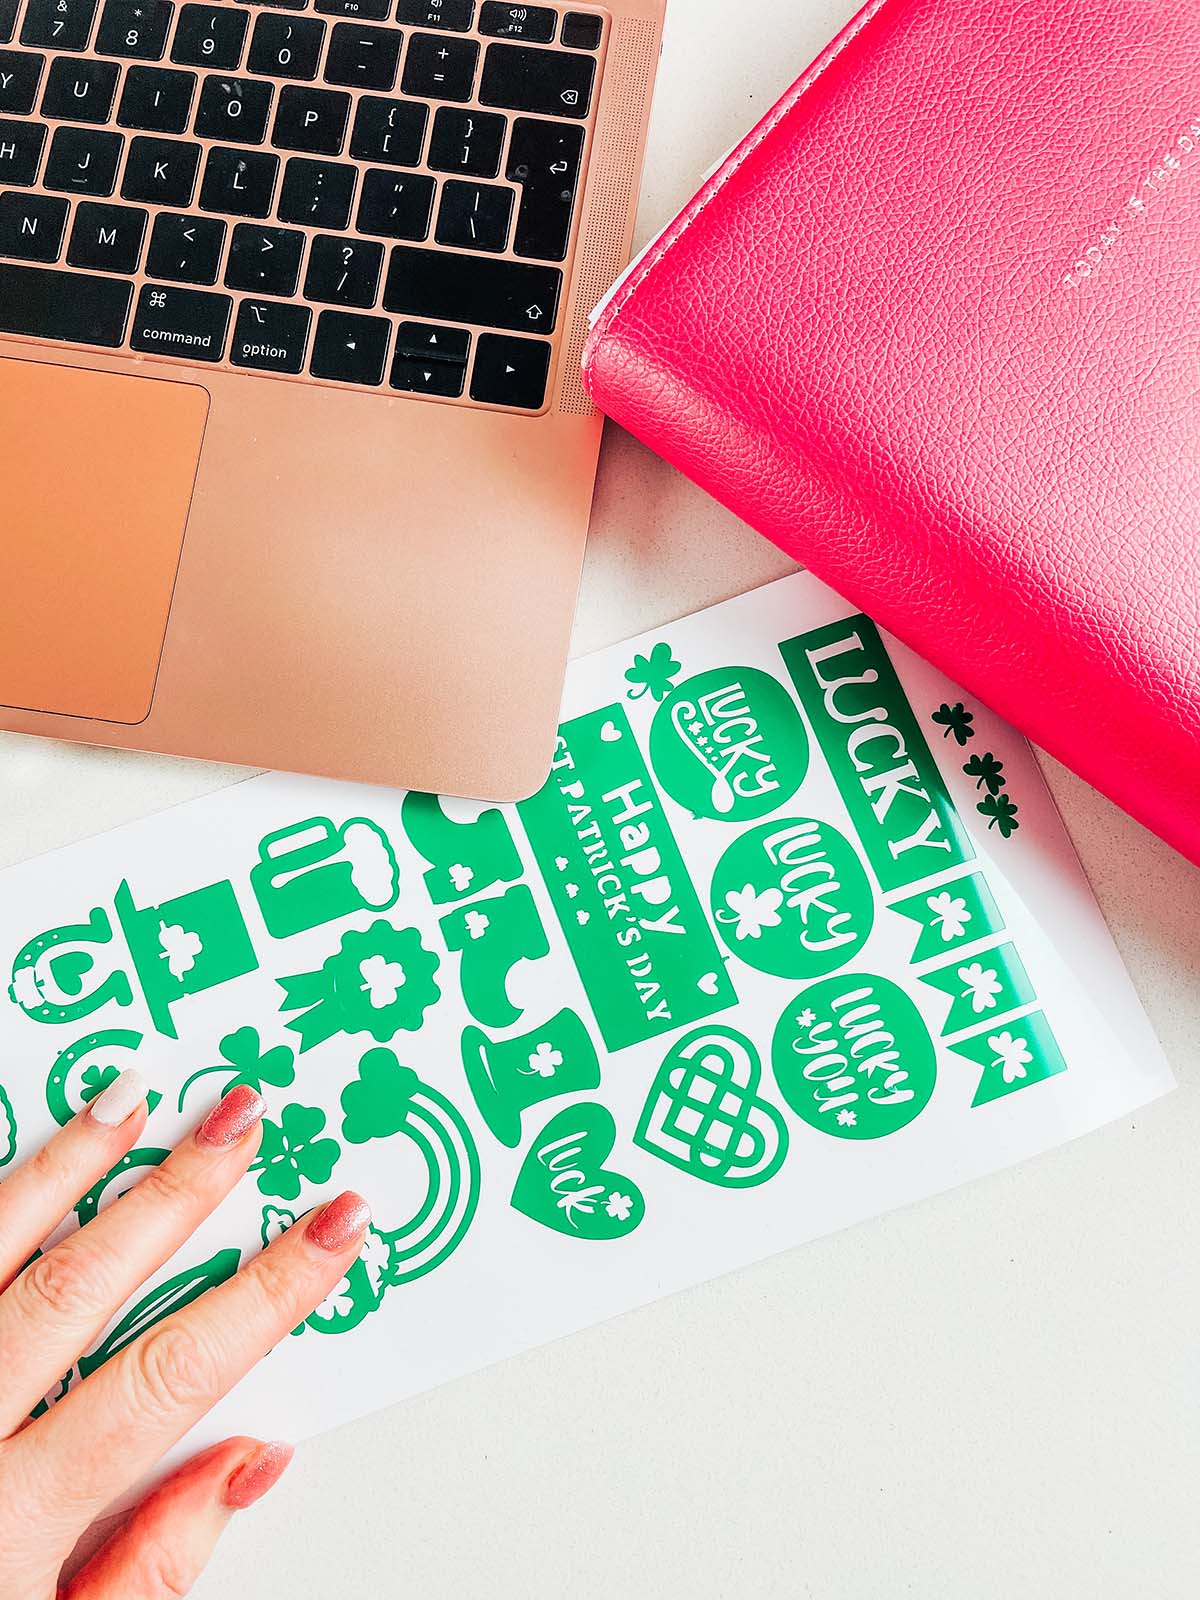 Free Downloadable Cricut Joy St. Patricks Day Stickers